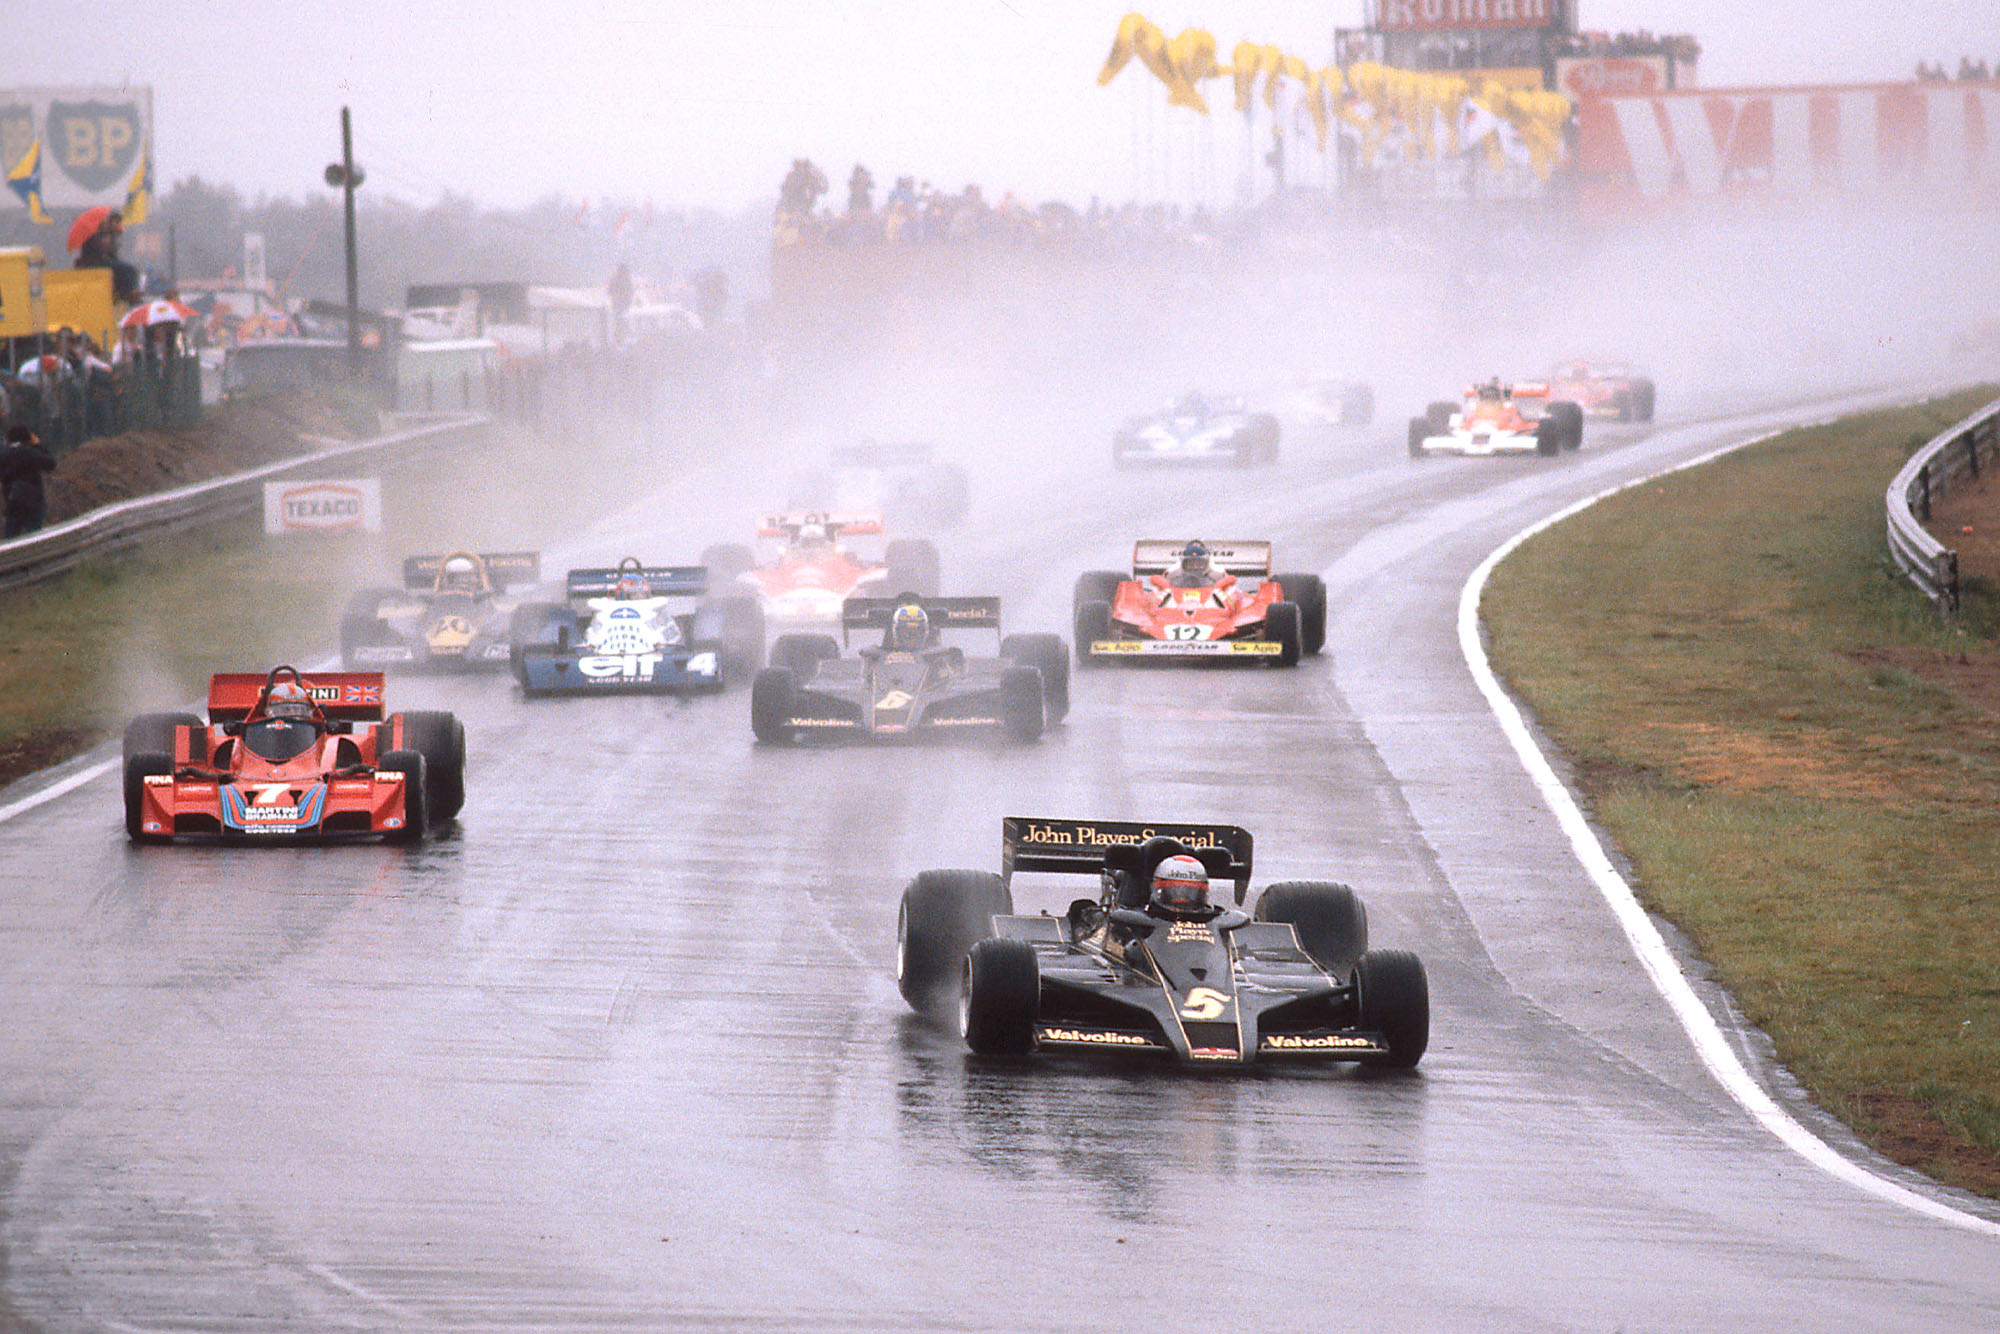 Mario Andretti leads the field at the start of the 1977 Belgian Grand Prix, Zolder.